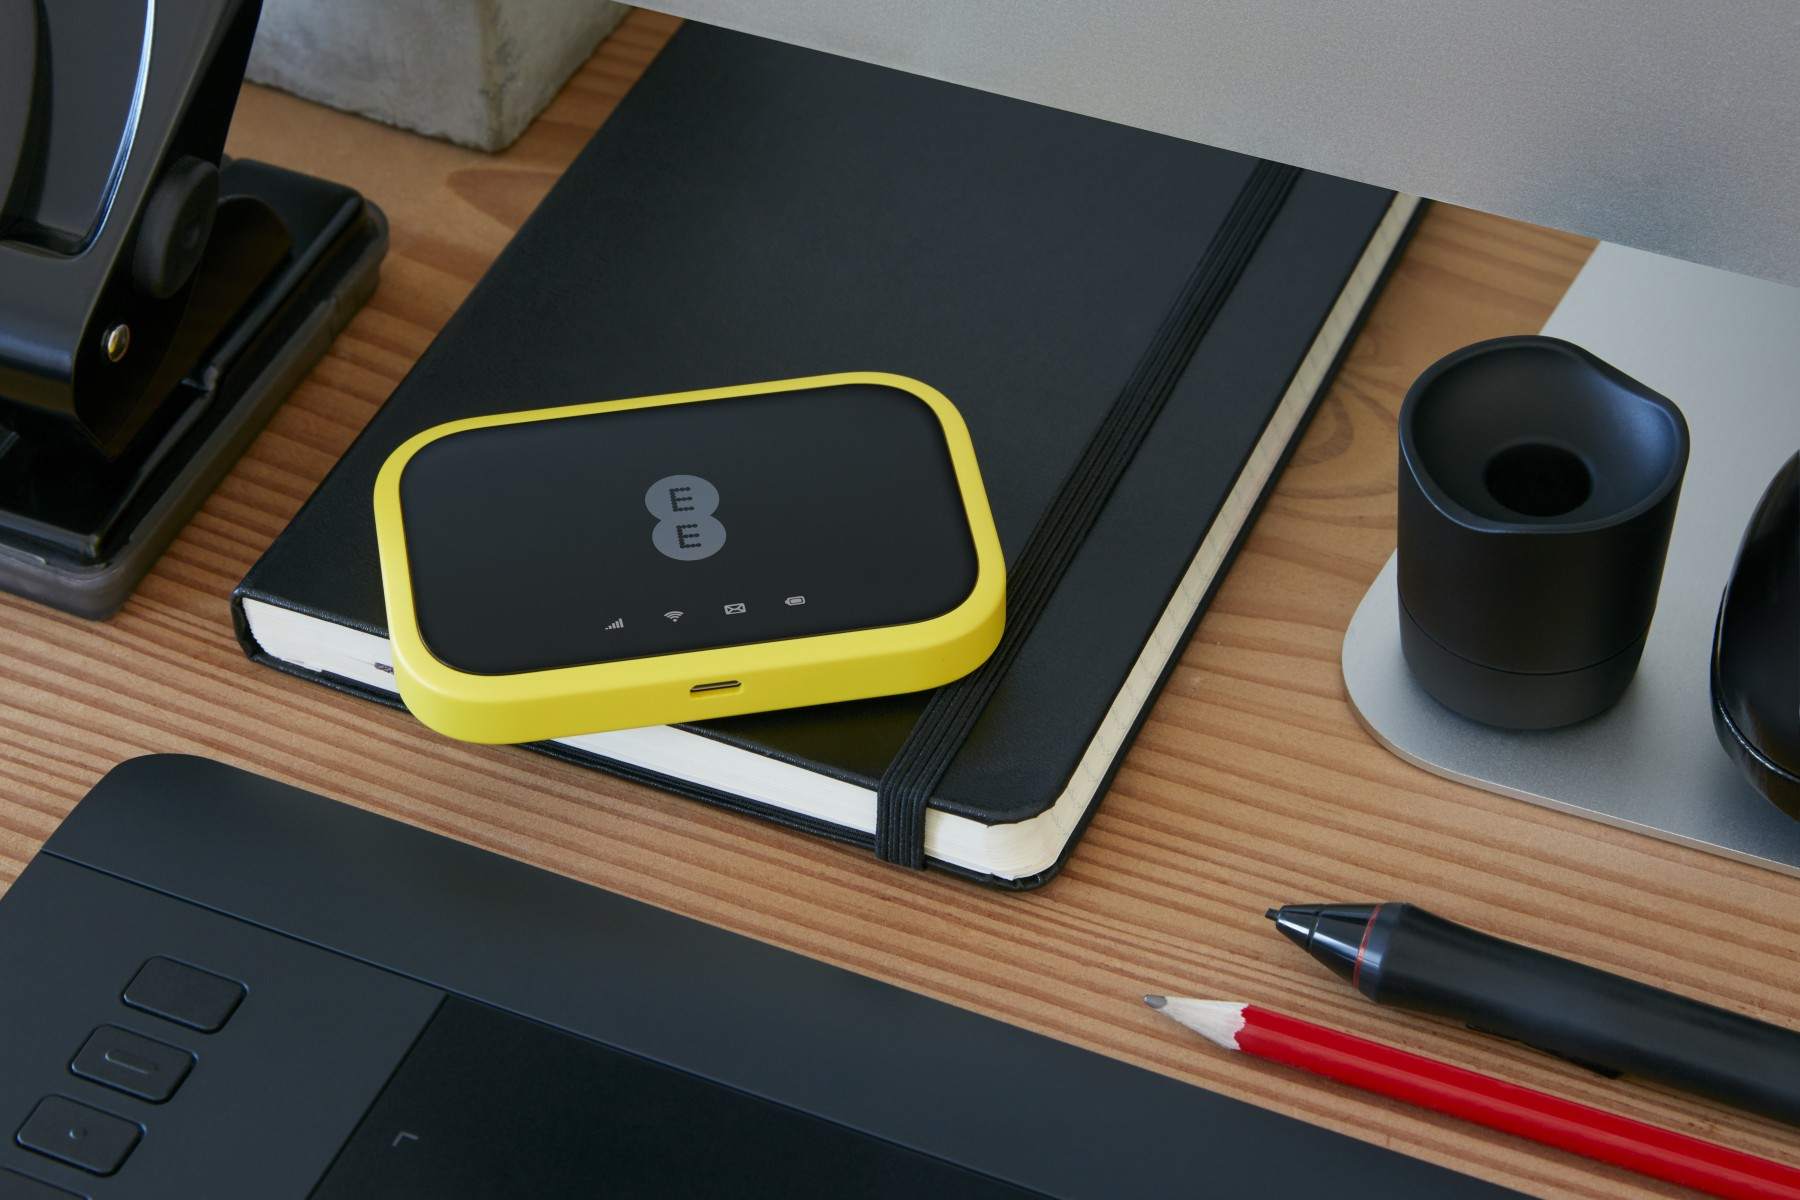 EE 4GEE WiFi Yellow Mini Lifestyle Office